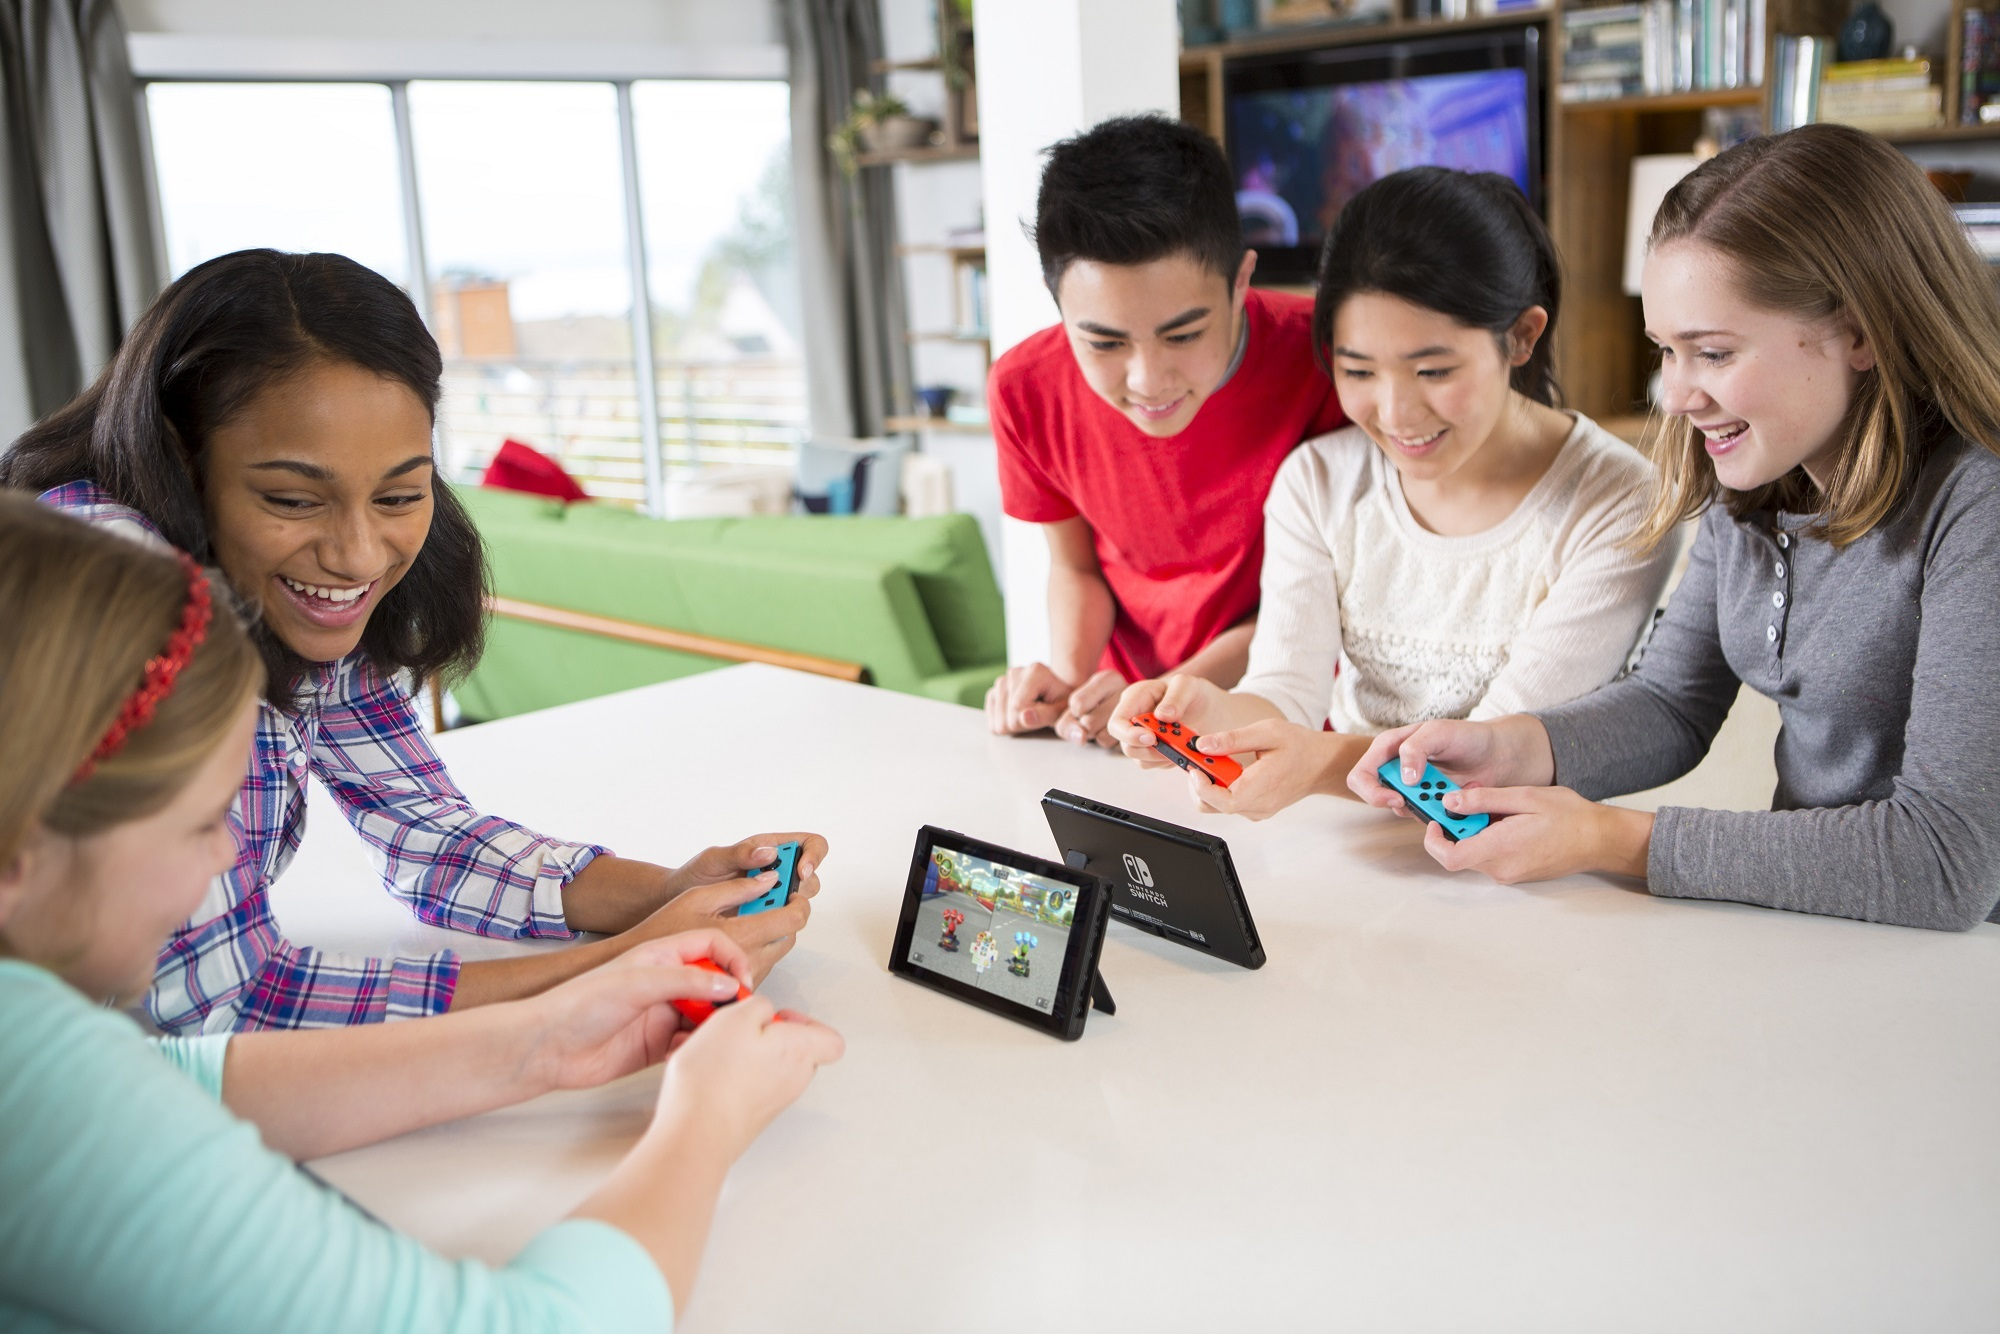 Nintendo News Nintendo Switch Was the Best Selling Video Game